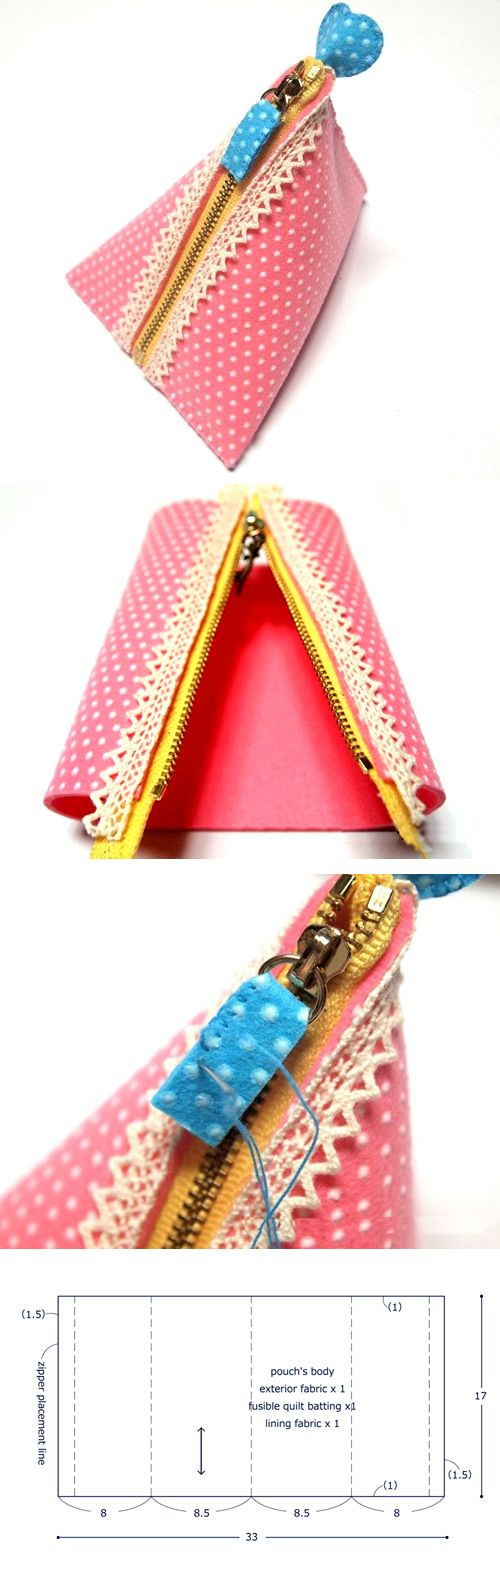 How to Sew Triangle Pouch Tutorial. Photo Sewing Tutorial.   http://www.handmadiya.com/2016/03/triangle-pouch-tutorial.html